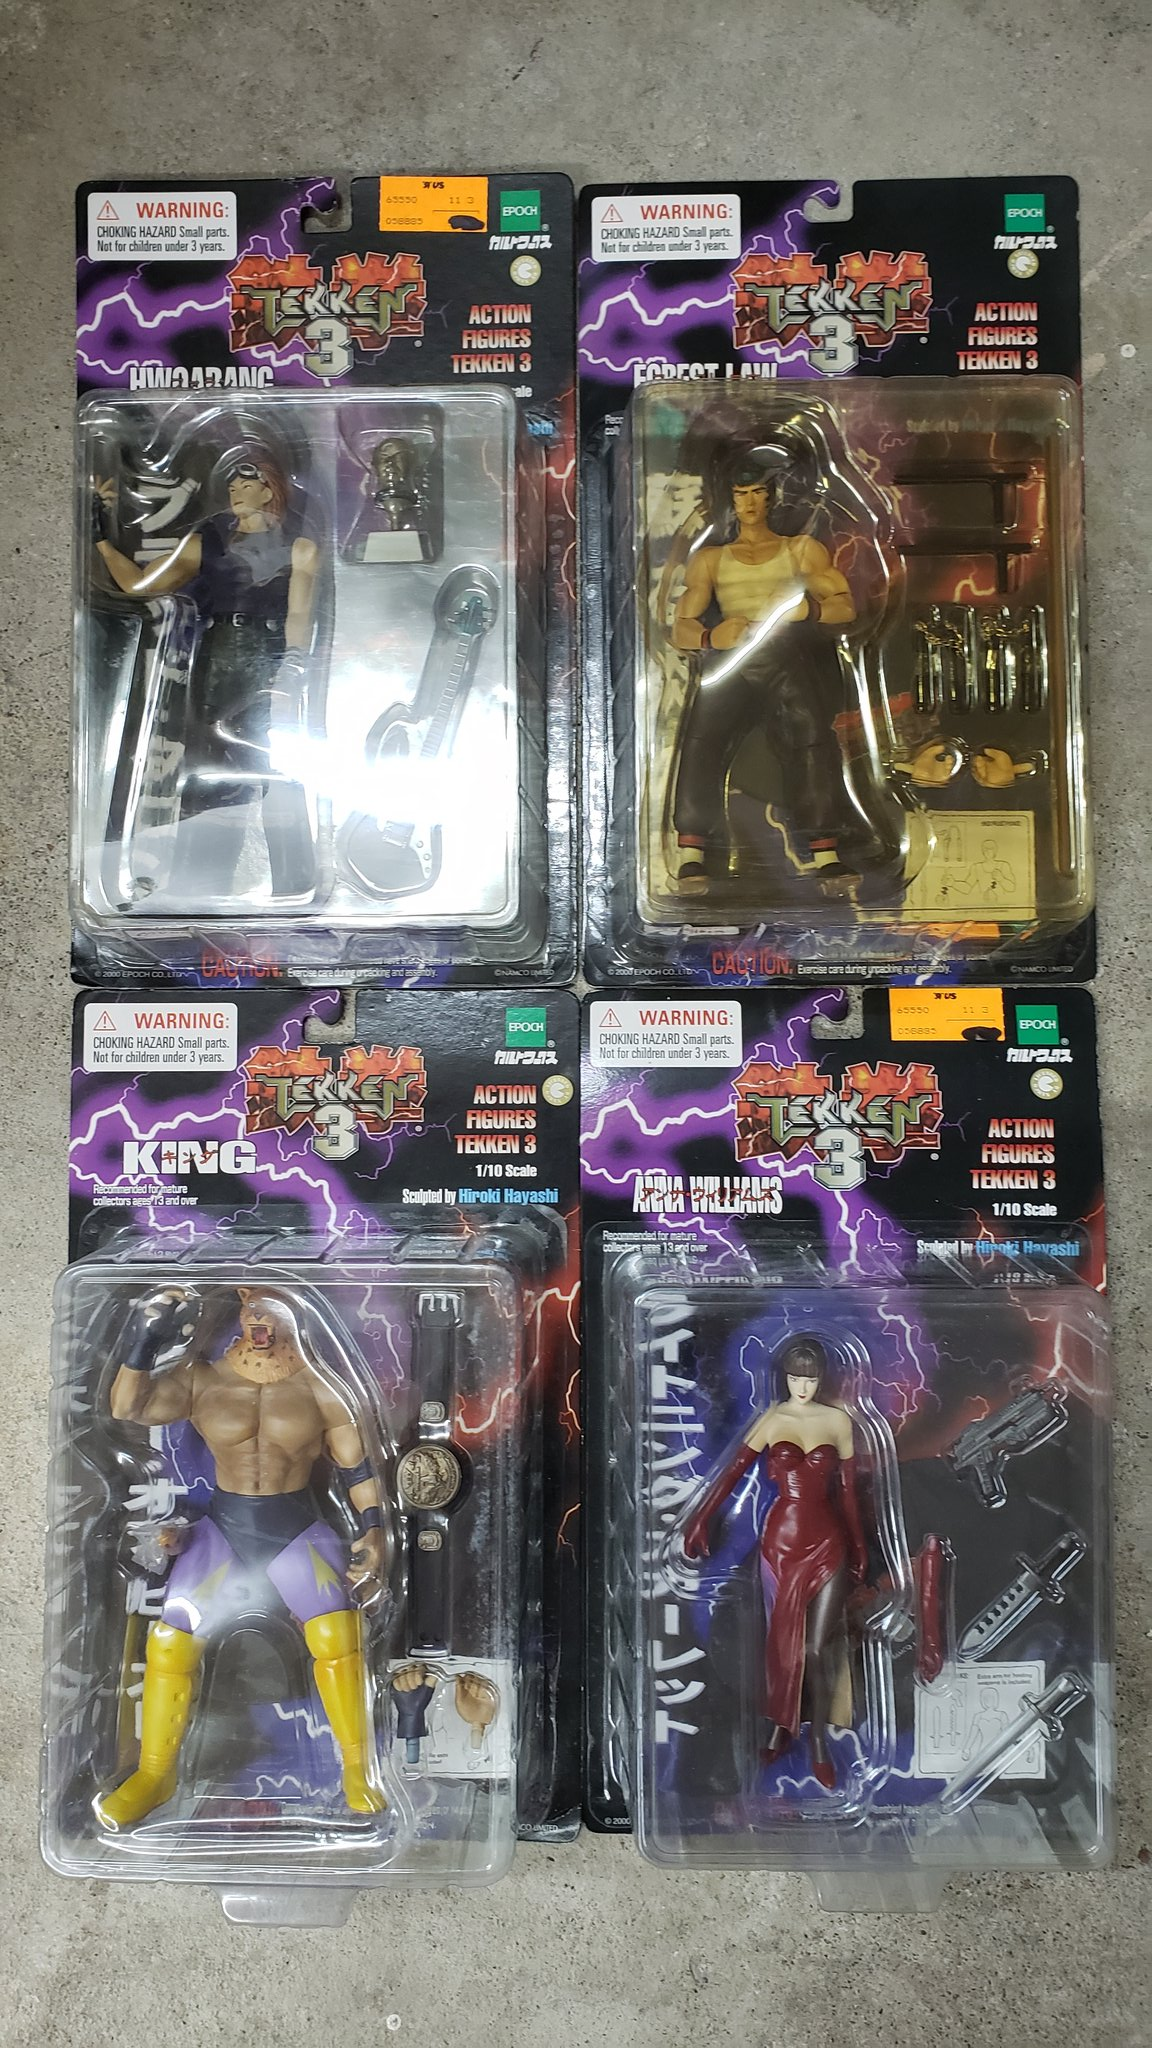 Riotkitty On Twitter Dusting Off My Tekken 3 Action Figure Collection I Ve Been Holding Onto Them Unopened For Nearly 20 Years